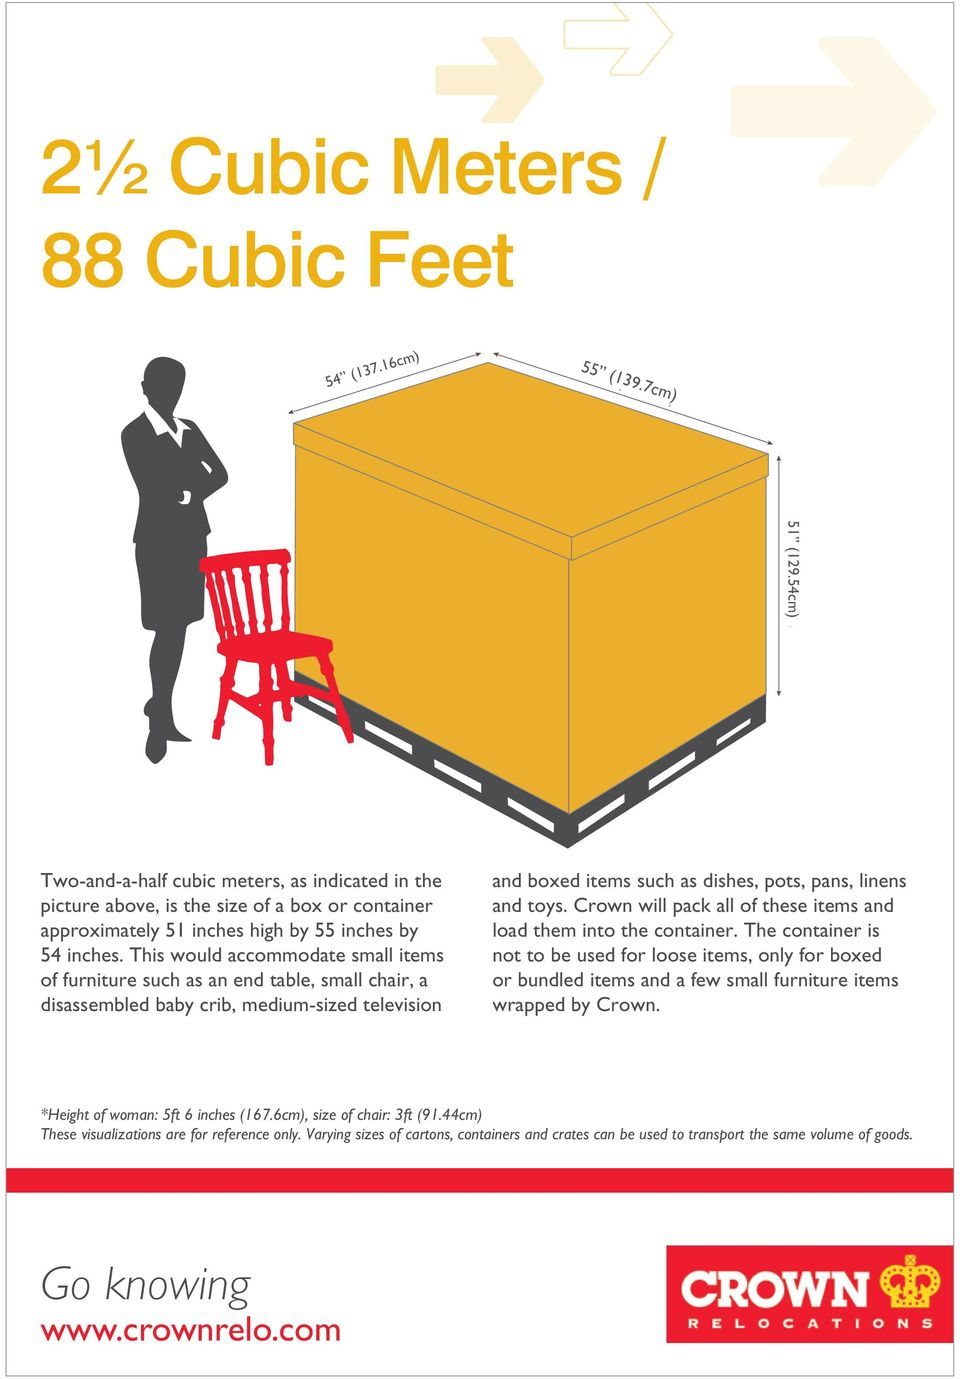 Cubic Meter 17 Cubic Feet Pdf Free Download How long is 51 inches? docplayer net